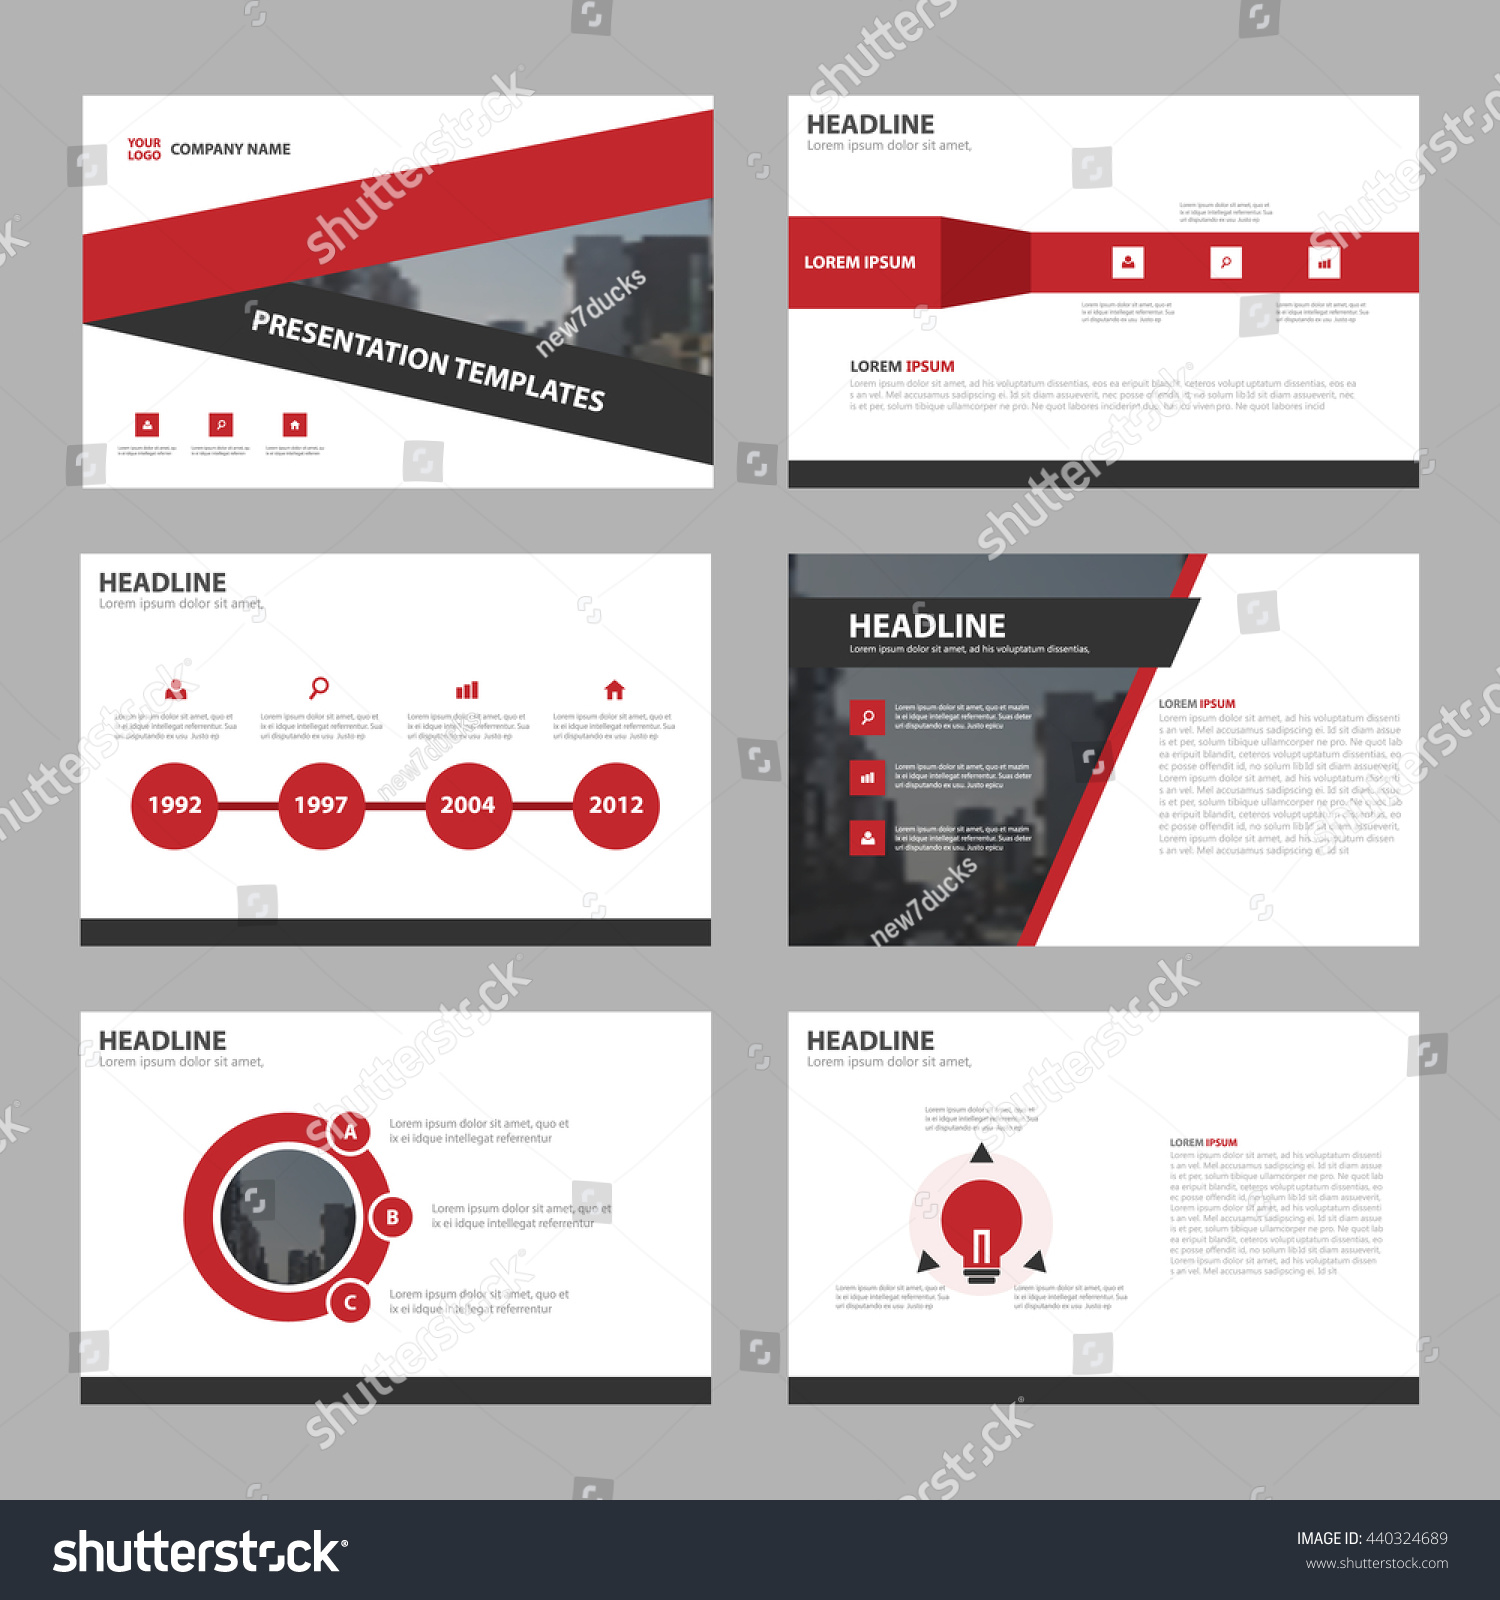 Red Triangle Abstract Presentation Templates Infographic Stock ...